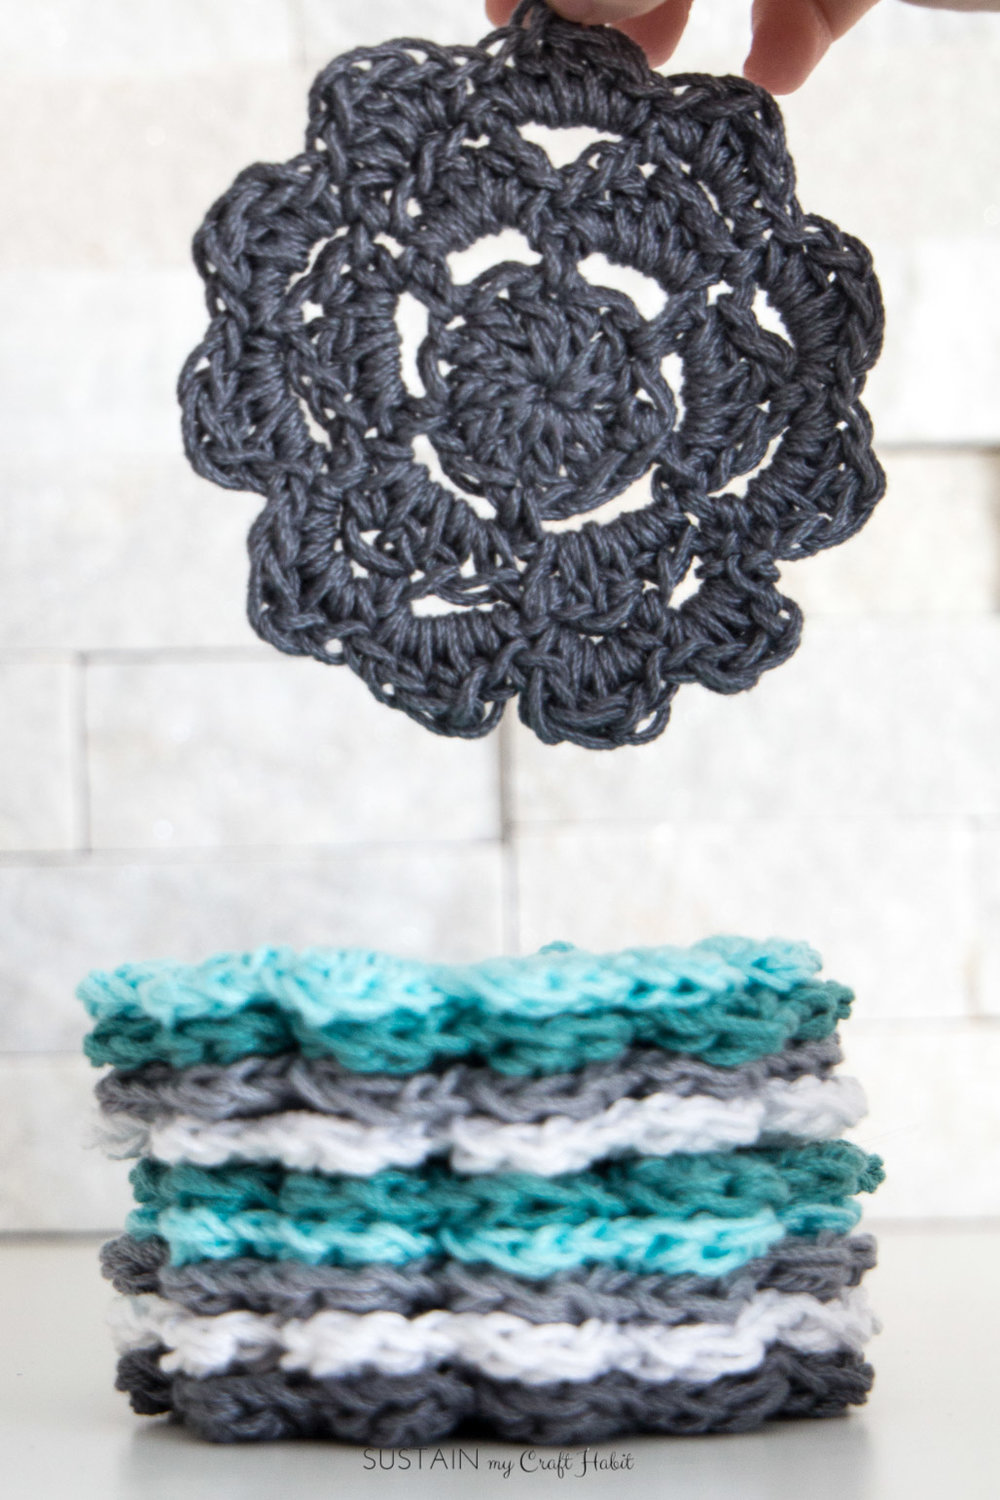 These easy crochet coasters were made with Lion Brand 24/7 Cotton yarn. Check out the review for a beach cover up using the same yarn and grab the free pattern for this crochet round.. #ad